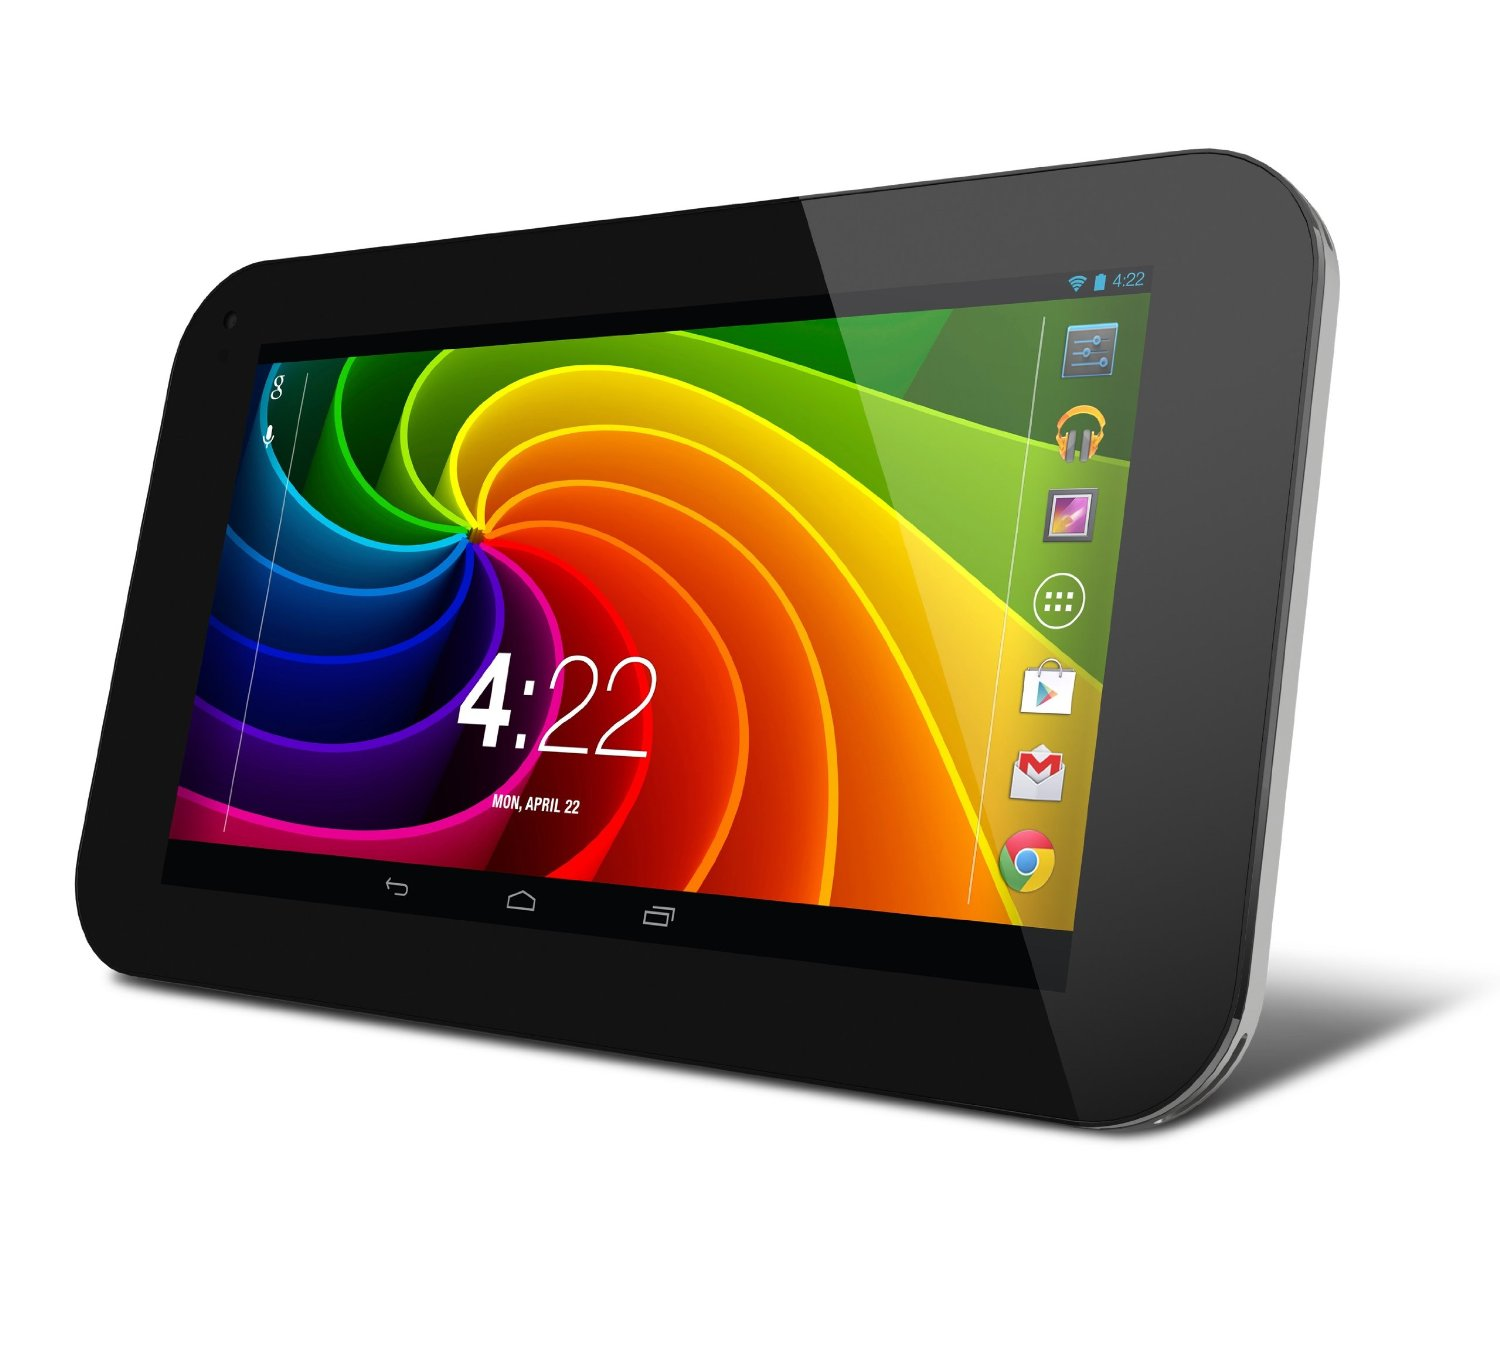 Toshiba Excite AT7-B618 Tablet price in Pakistan, Toshiba ...